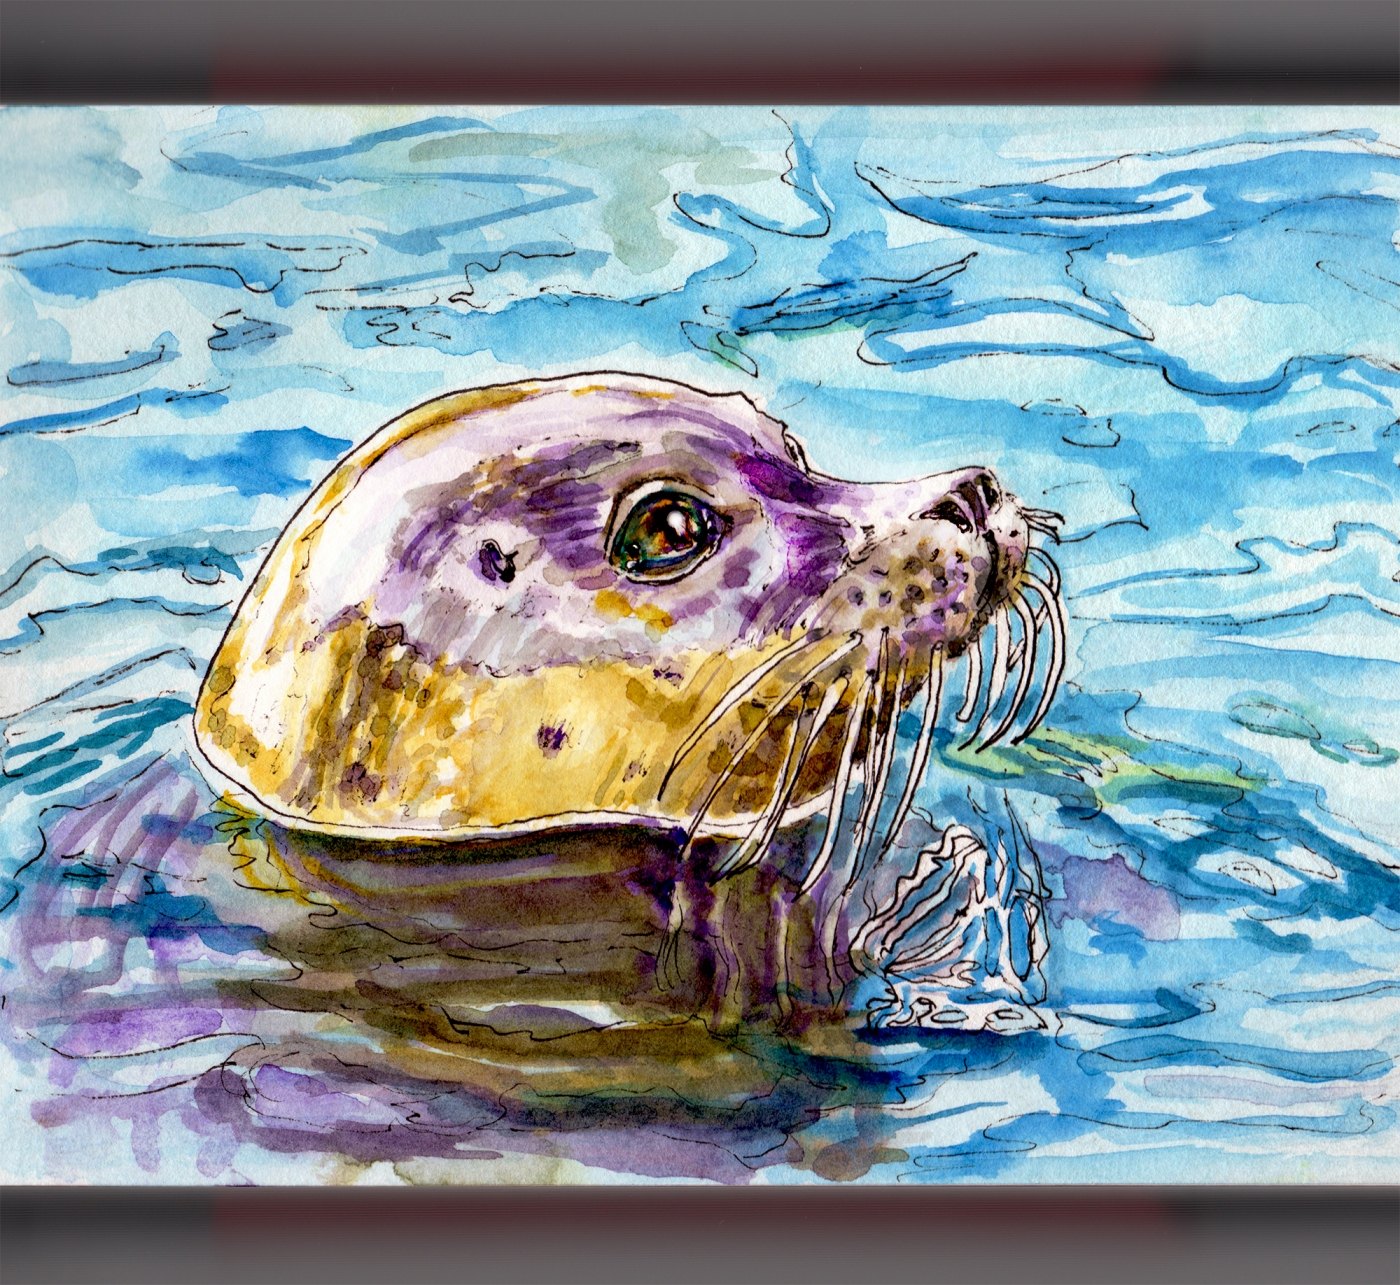 Day 10 - #WorldWatercolorGroup - Hugging A Seal - Seal Head Poking Out Off Water